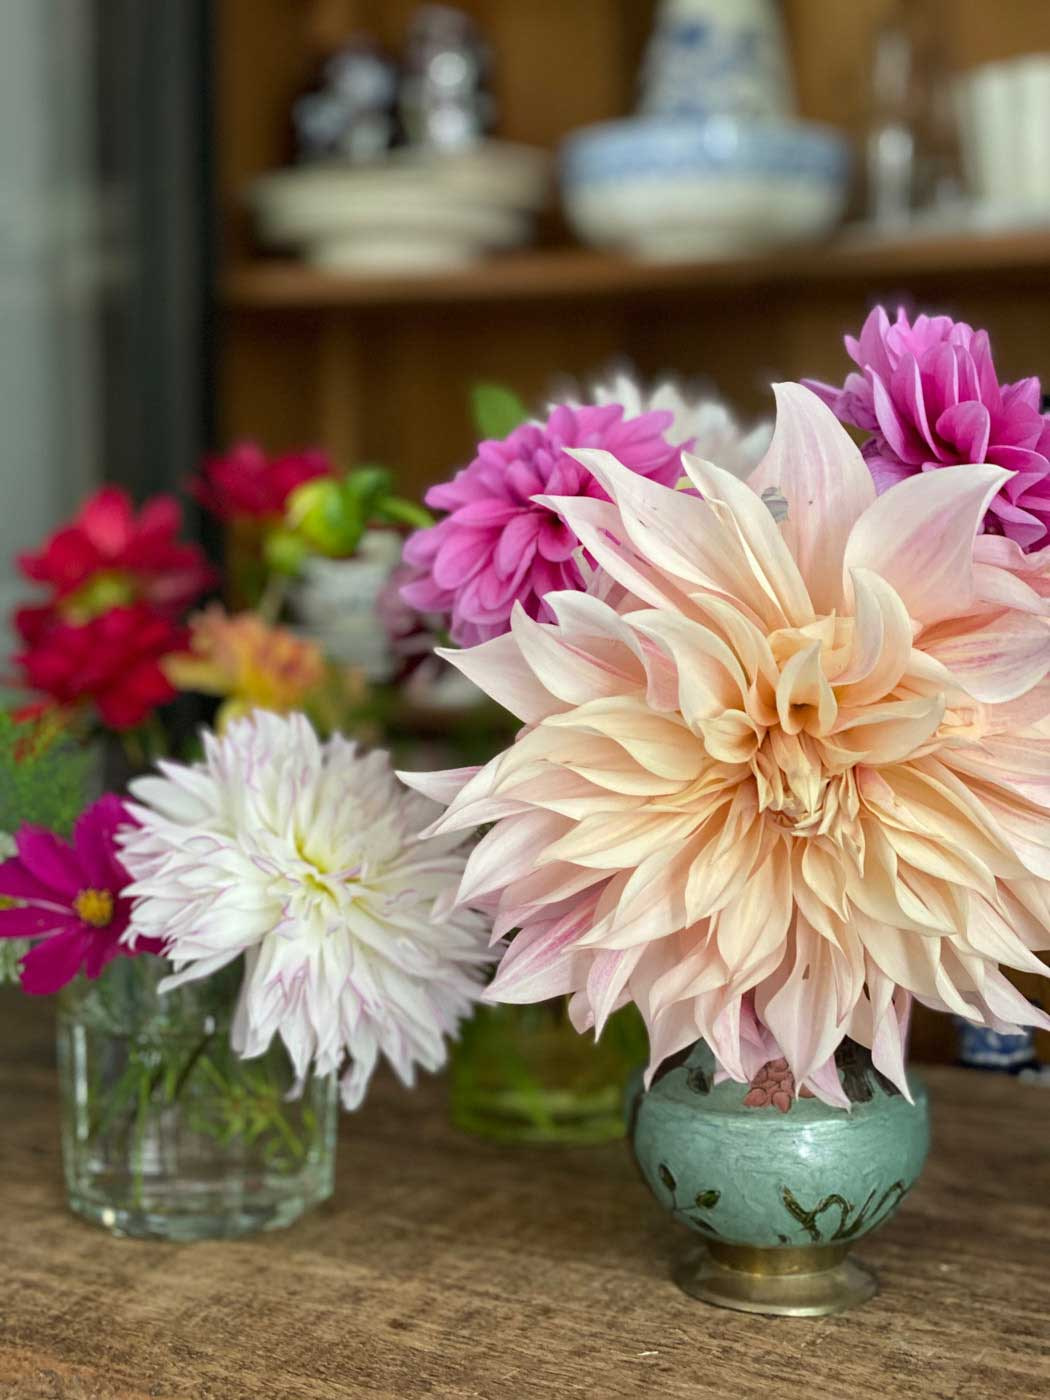 tuto-creer-petits-bouquet-dahlias-art-floral-14